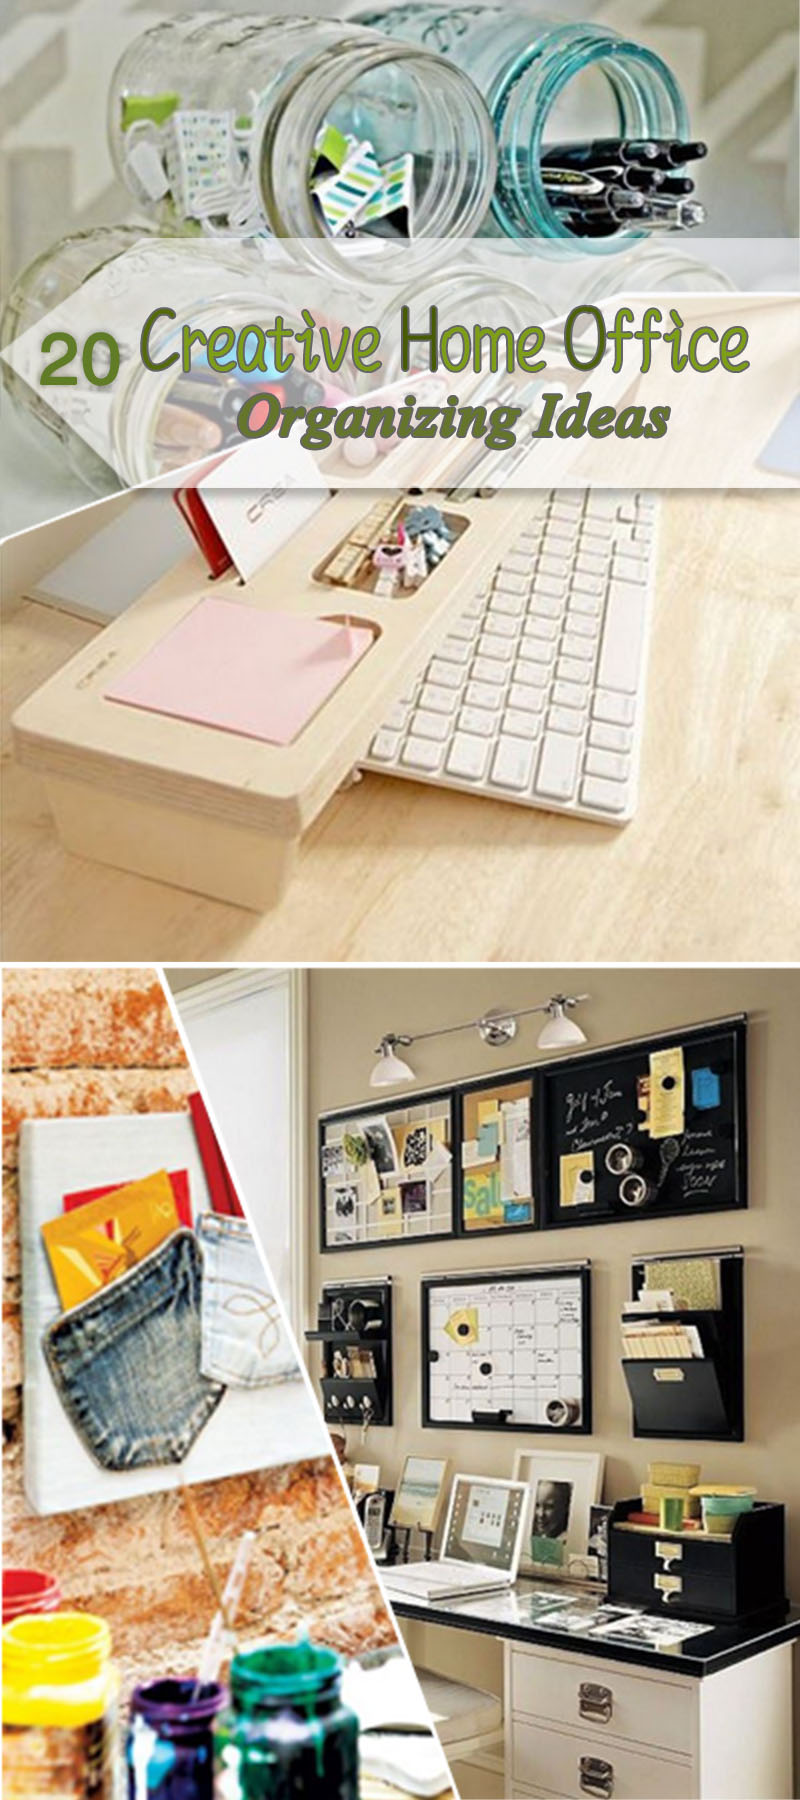 Creative Home Office Organizing Ideas!